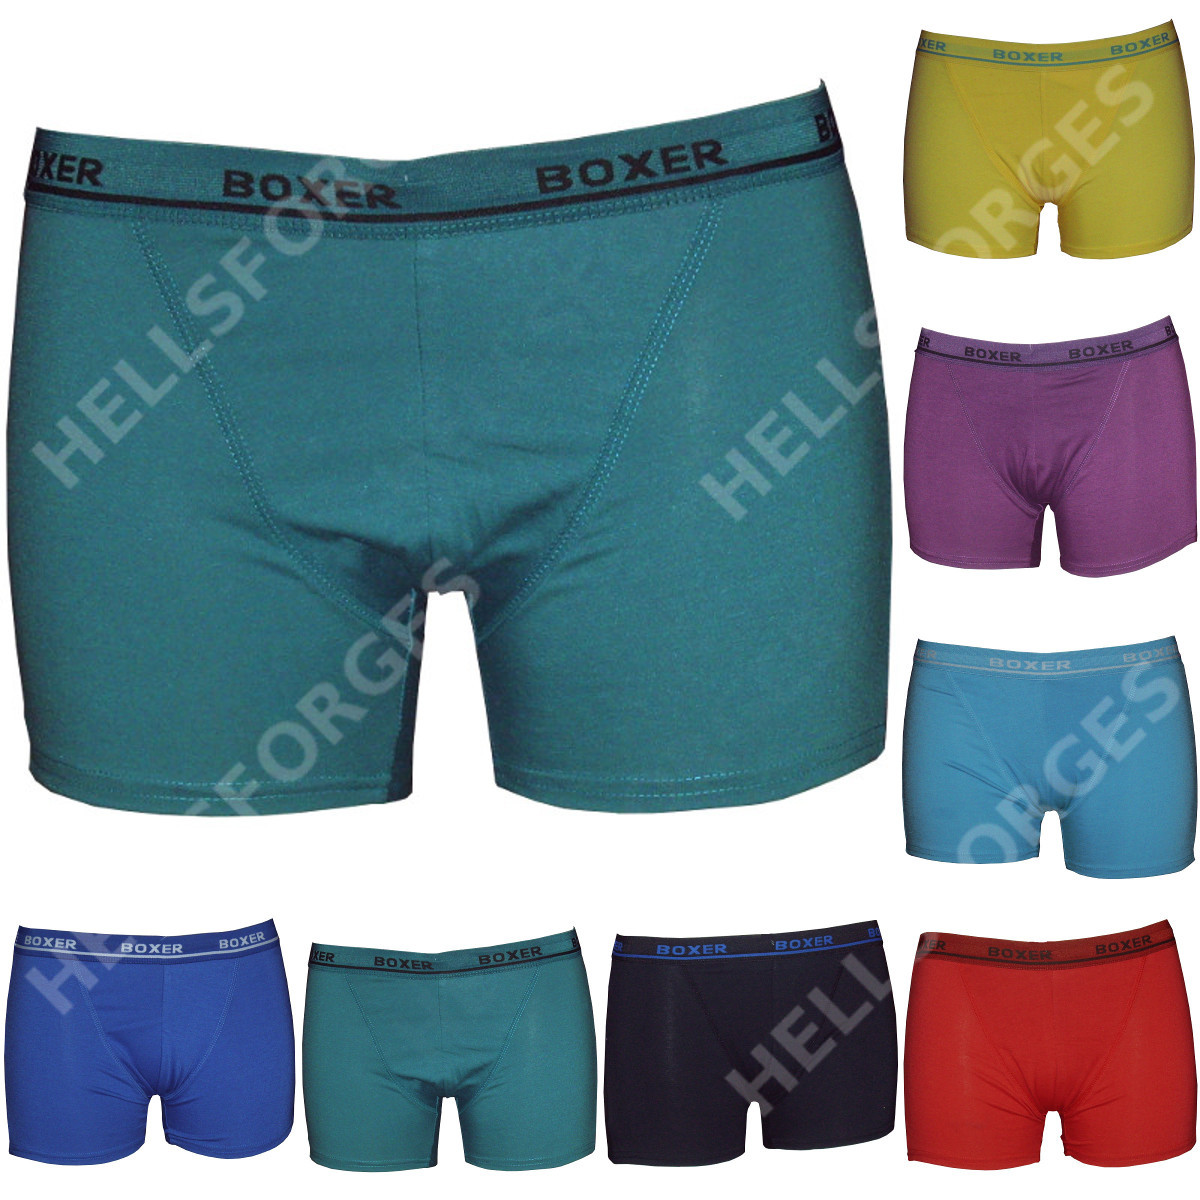 lot pack 3 boxer homme coton s m l xl xxl men short pas cher no ck v5 ebay. Black Bedroom Furniture Sets. Home Design Ideas